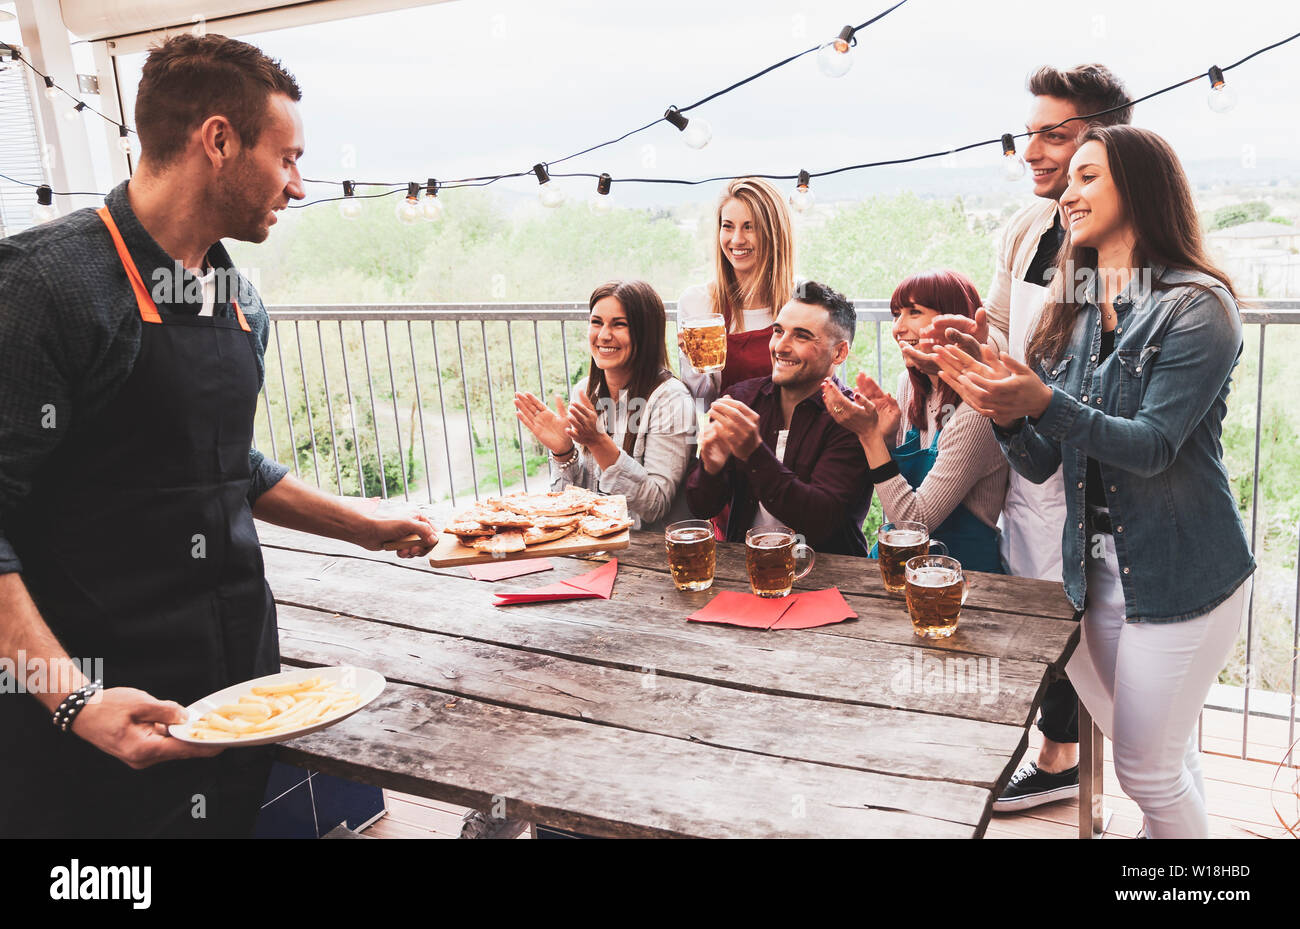 Happy group of friends drinking beer and eating pizza at brewery bar restaurant. concept with young people having genuine fun Stock Photo